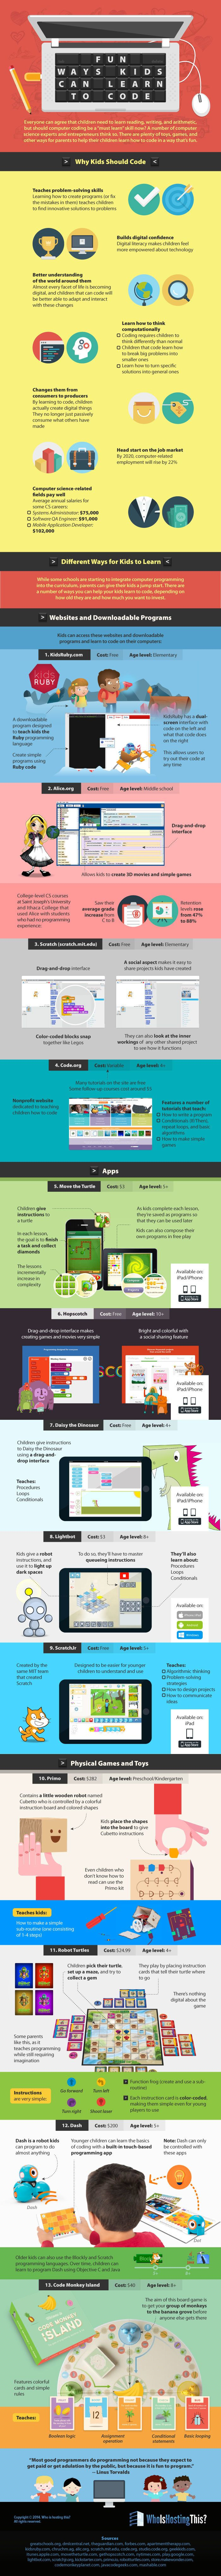 Fun Ways Kids Can Learn to Code Infographic